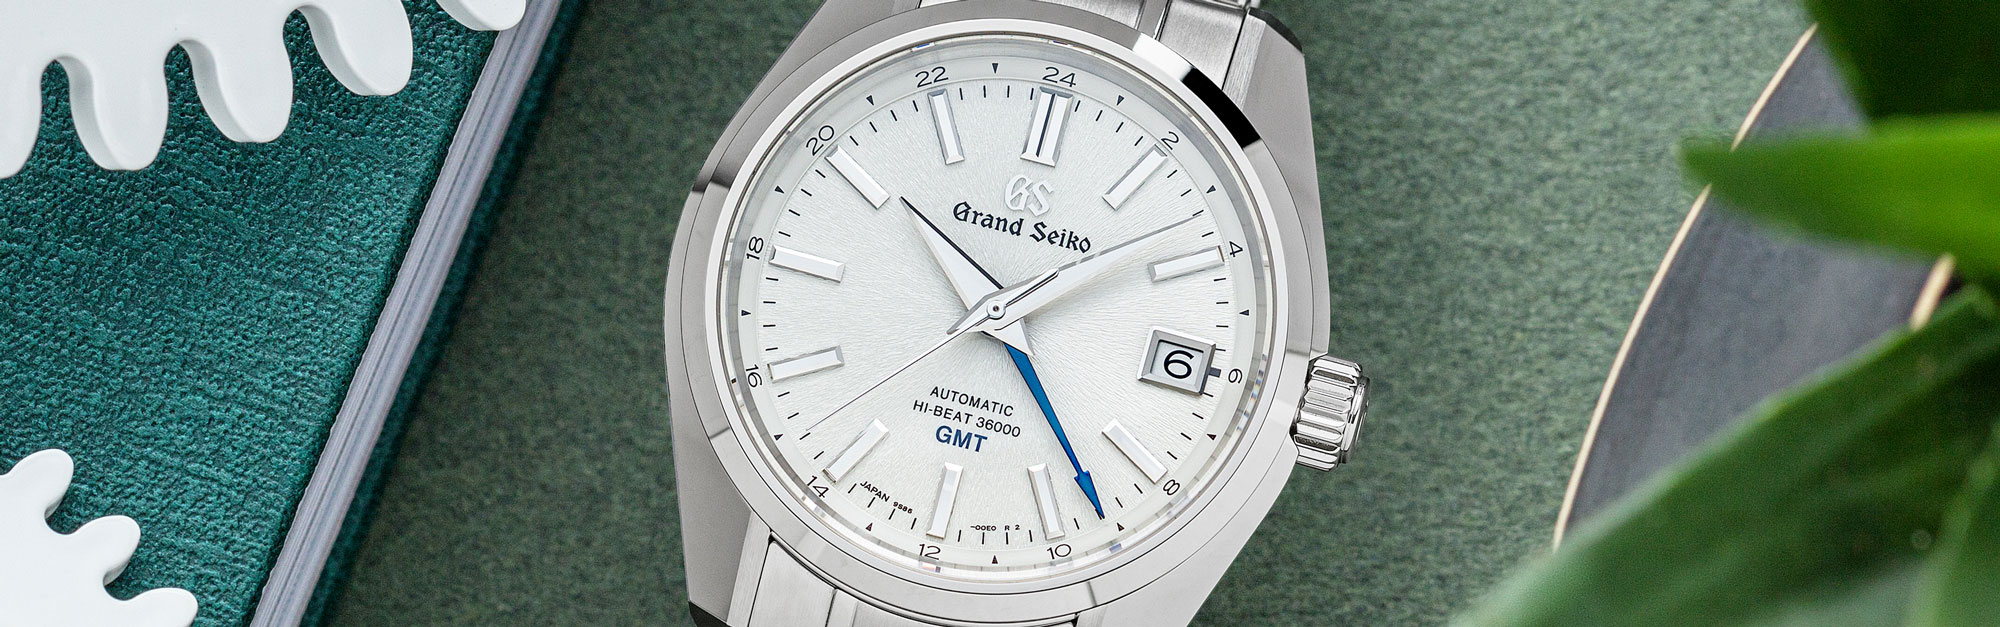 Grand Seiko SBGJ201 white dial stainless steel sport watch with GMT.